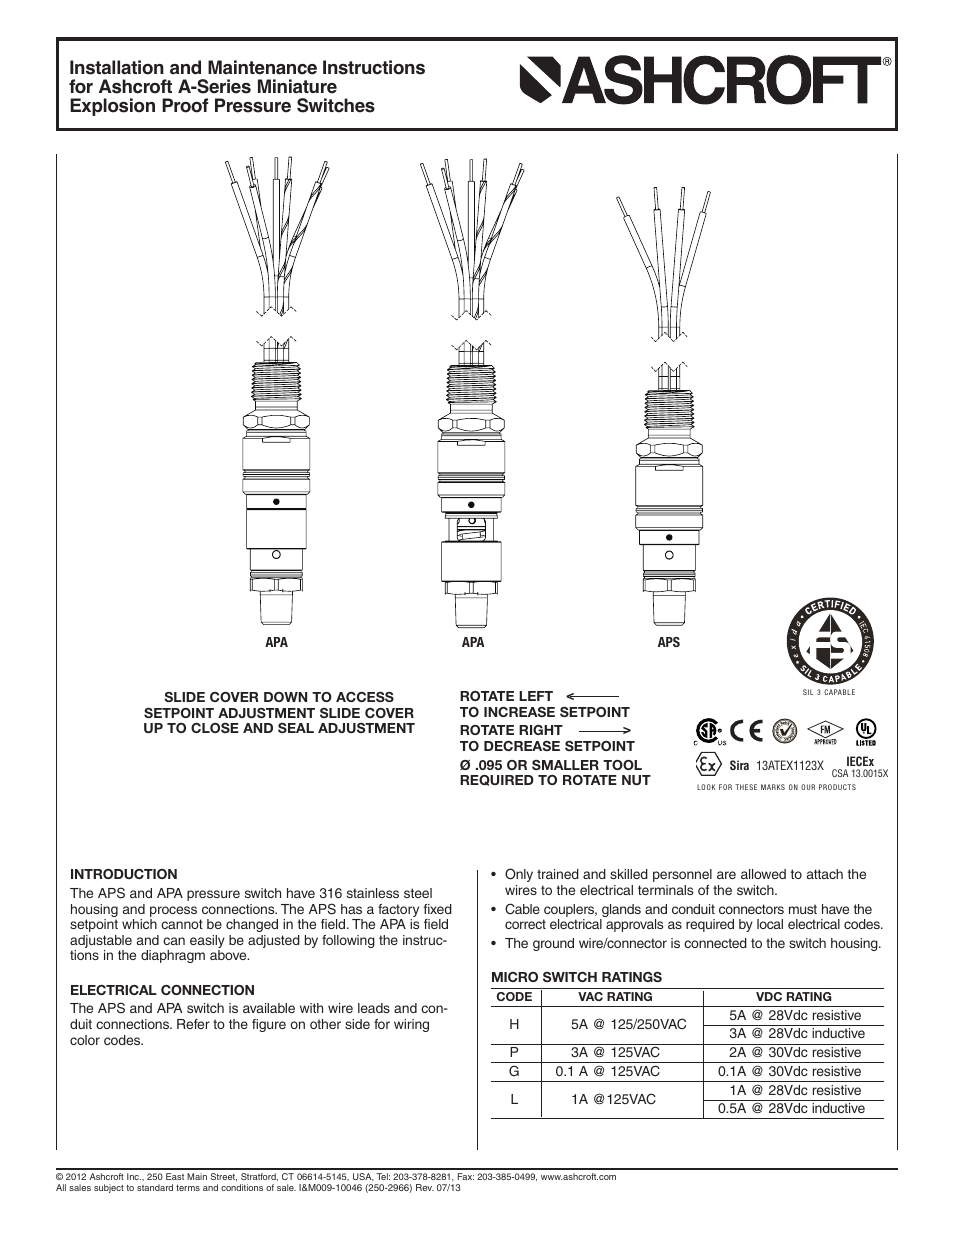 Ashcroft a series miniature explosion proof switch user manual 2 ashcroft a series miniature explosion proof switch user manual 2 pages asfbconference2016 Images